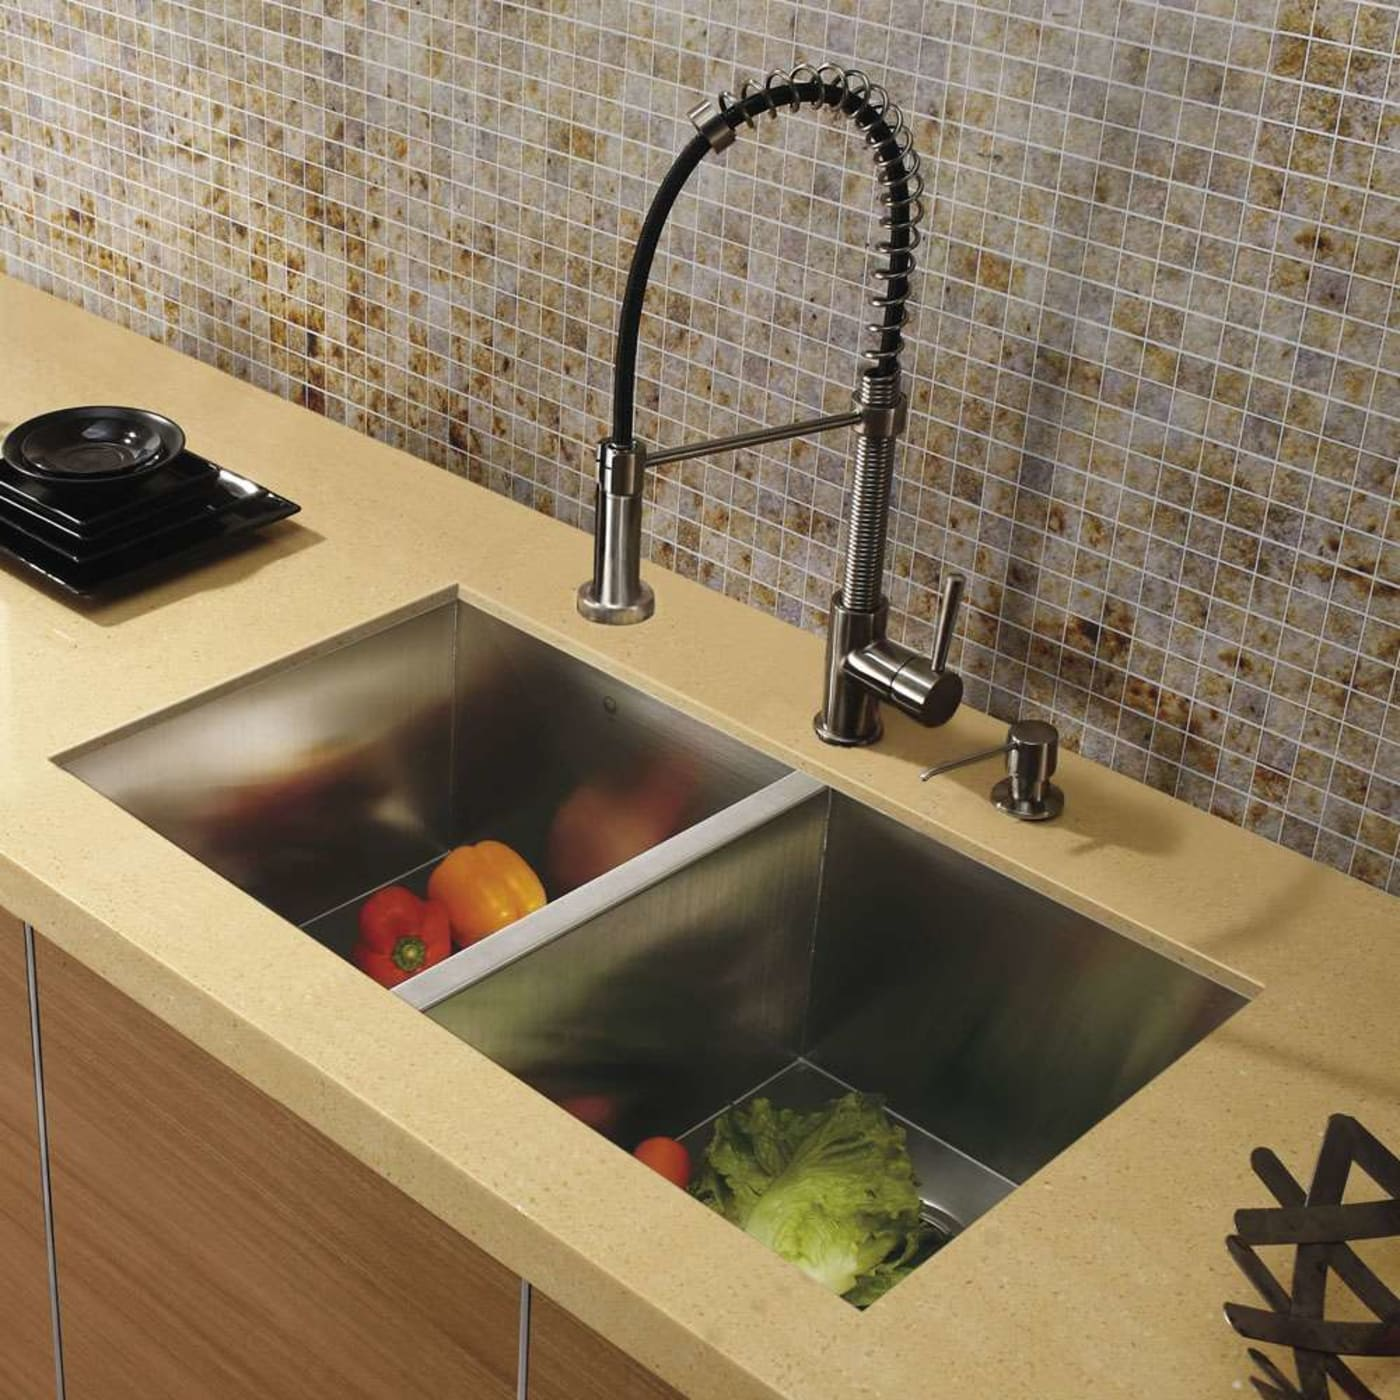 wonderful Vigo Sinks And Faucets Part - 7: Vigo VG15017. Undermount Stainless Steel Kitchen Sink, Faucet and Dispenser